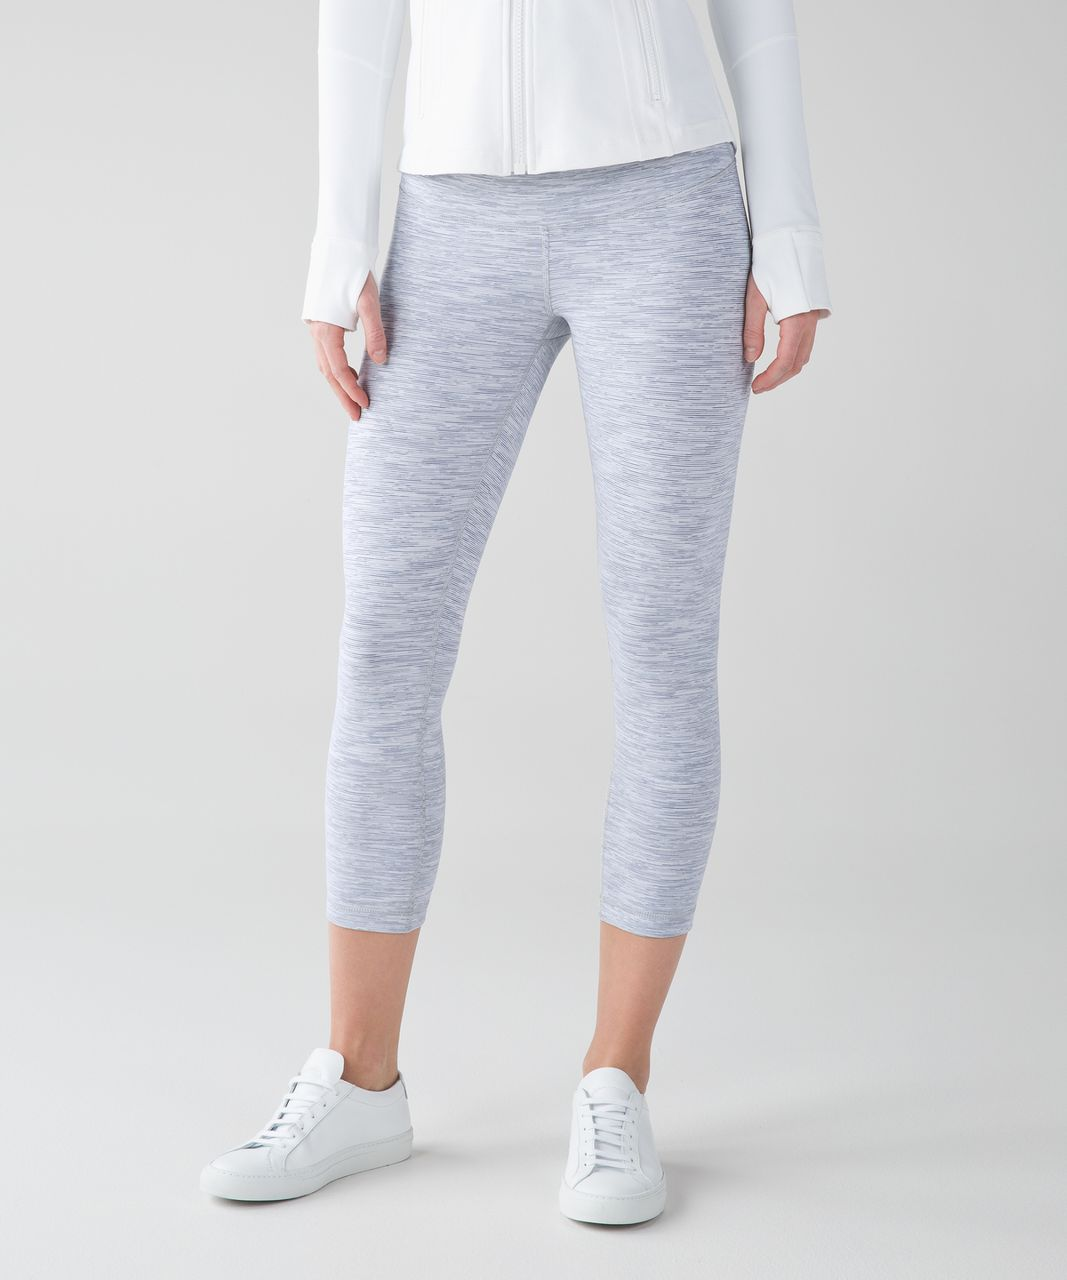 Lululemon Wunder Under Crop III - Wee Are From Space Nimbus Battleship